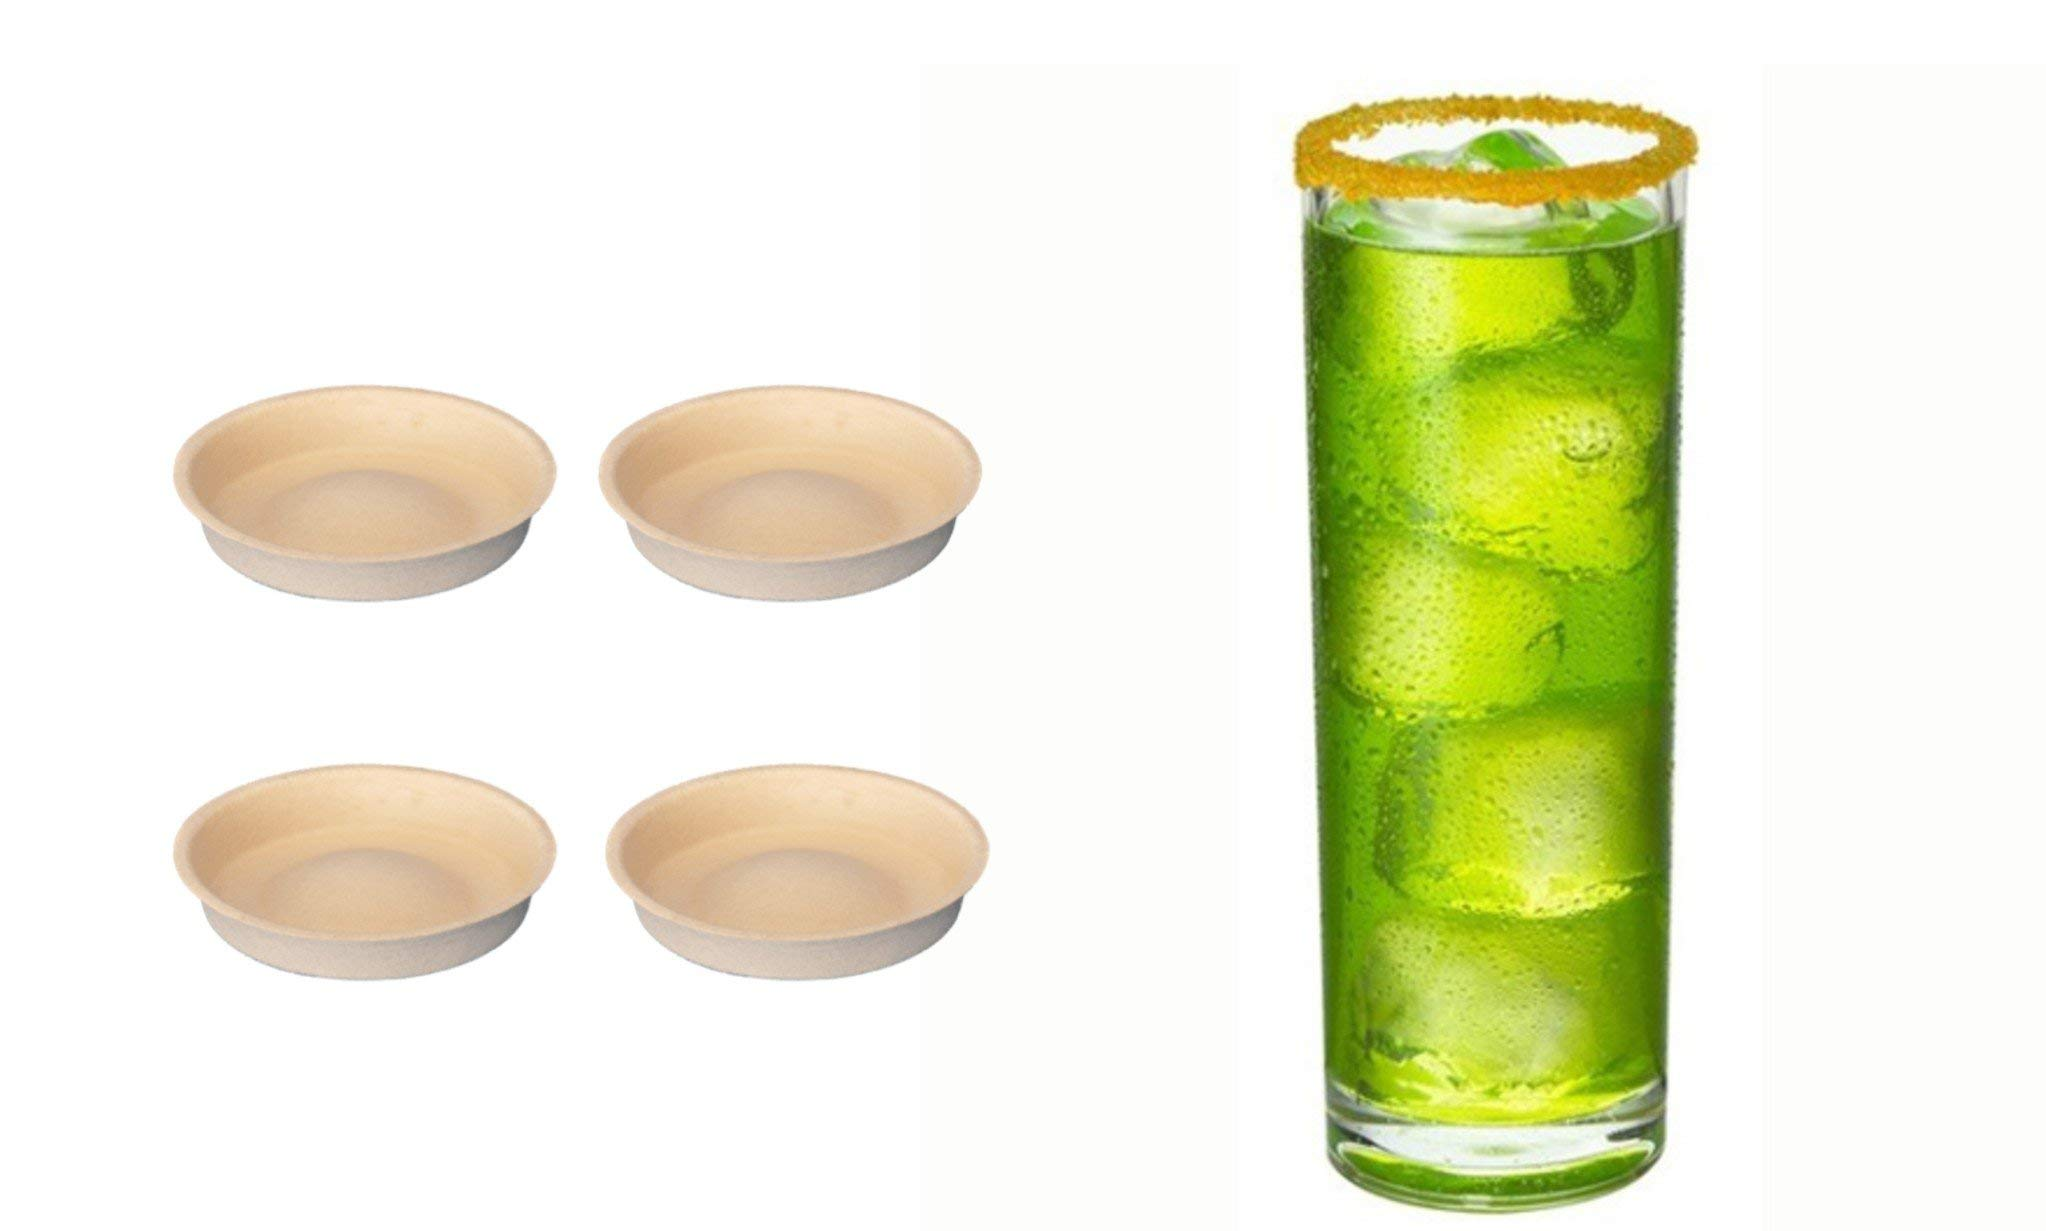 Mango Flavored Cocktail Glass Rim Sugar - 4 Pack RoxiSpice Tower Cartridges by RoxiSpice